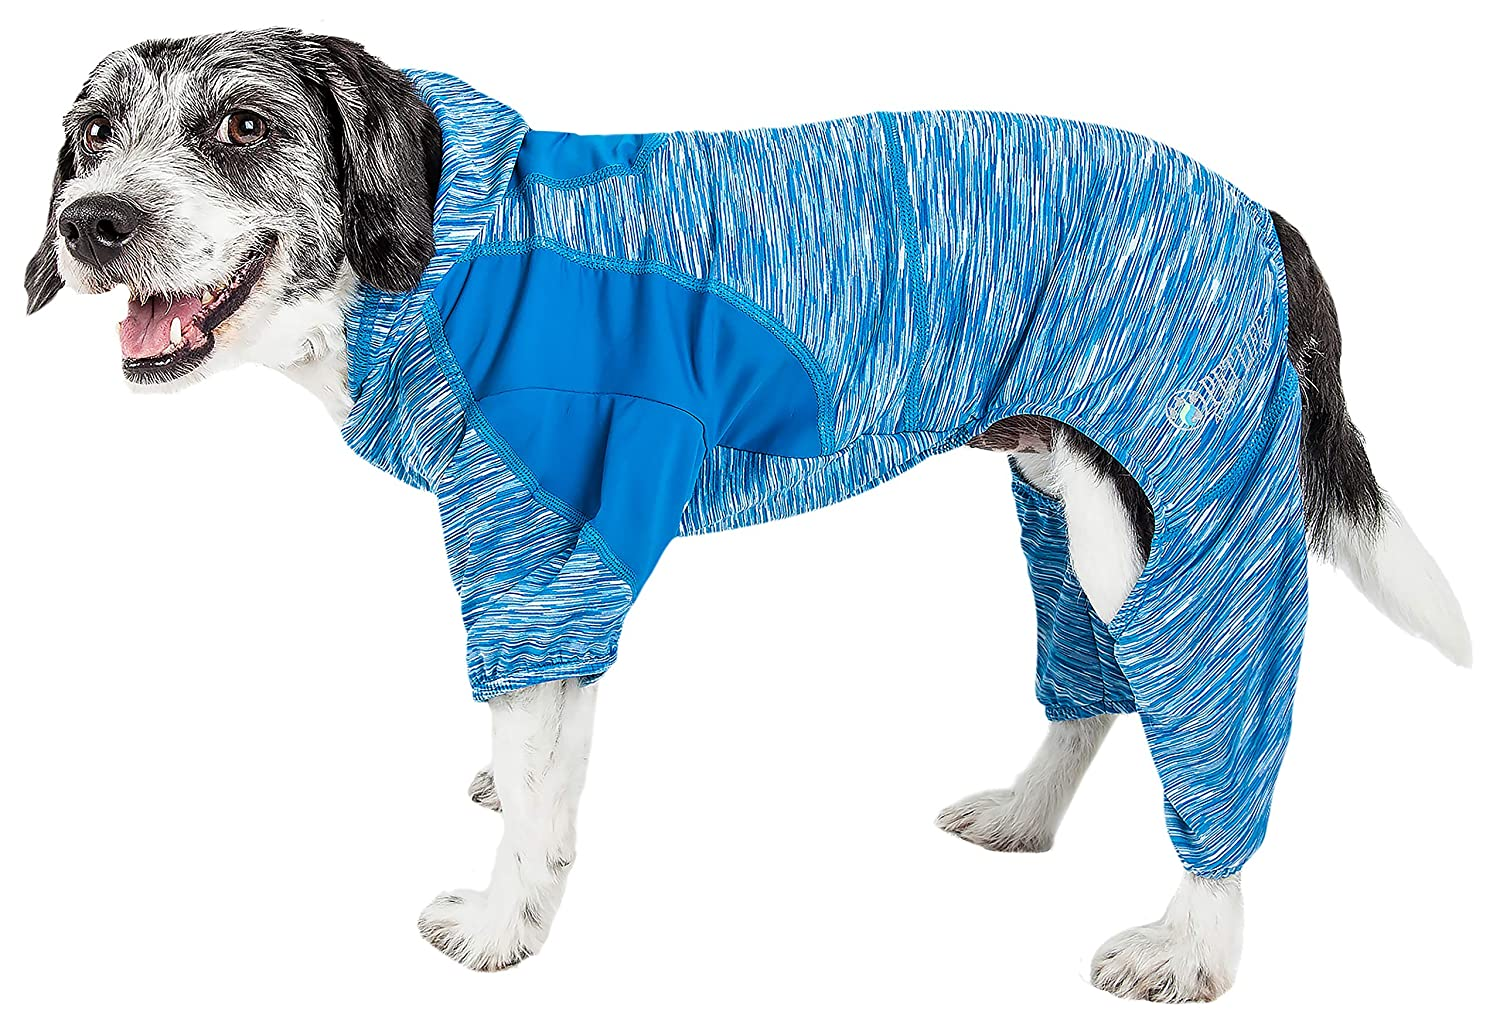 bluee X-small bluee X-small Pet Life 'Downward Dog' Heathered Performance 4-Way Stretch Two-Toned Full Body Hoodie, X-Small, bluee